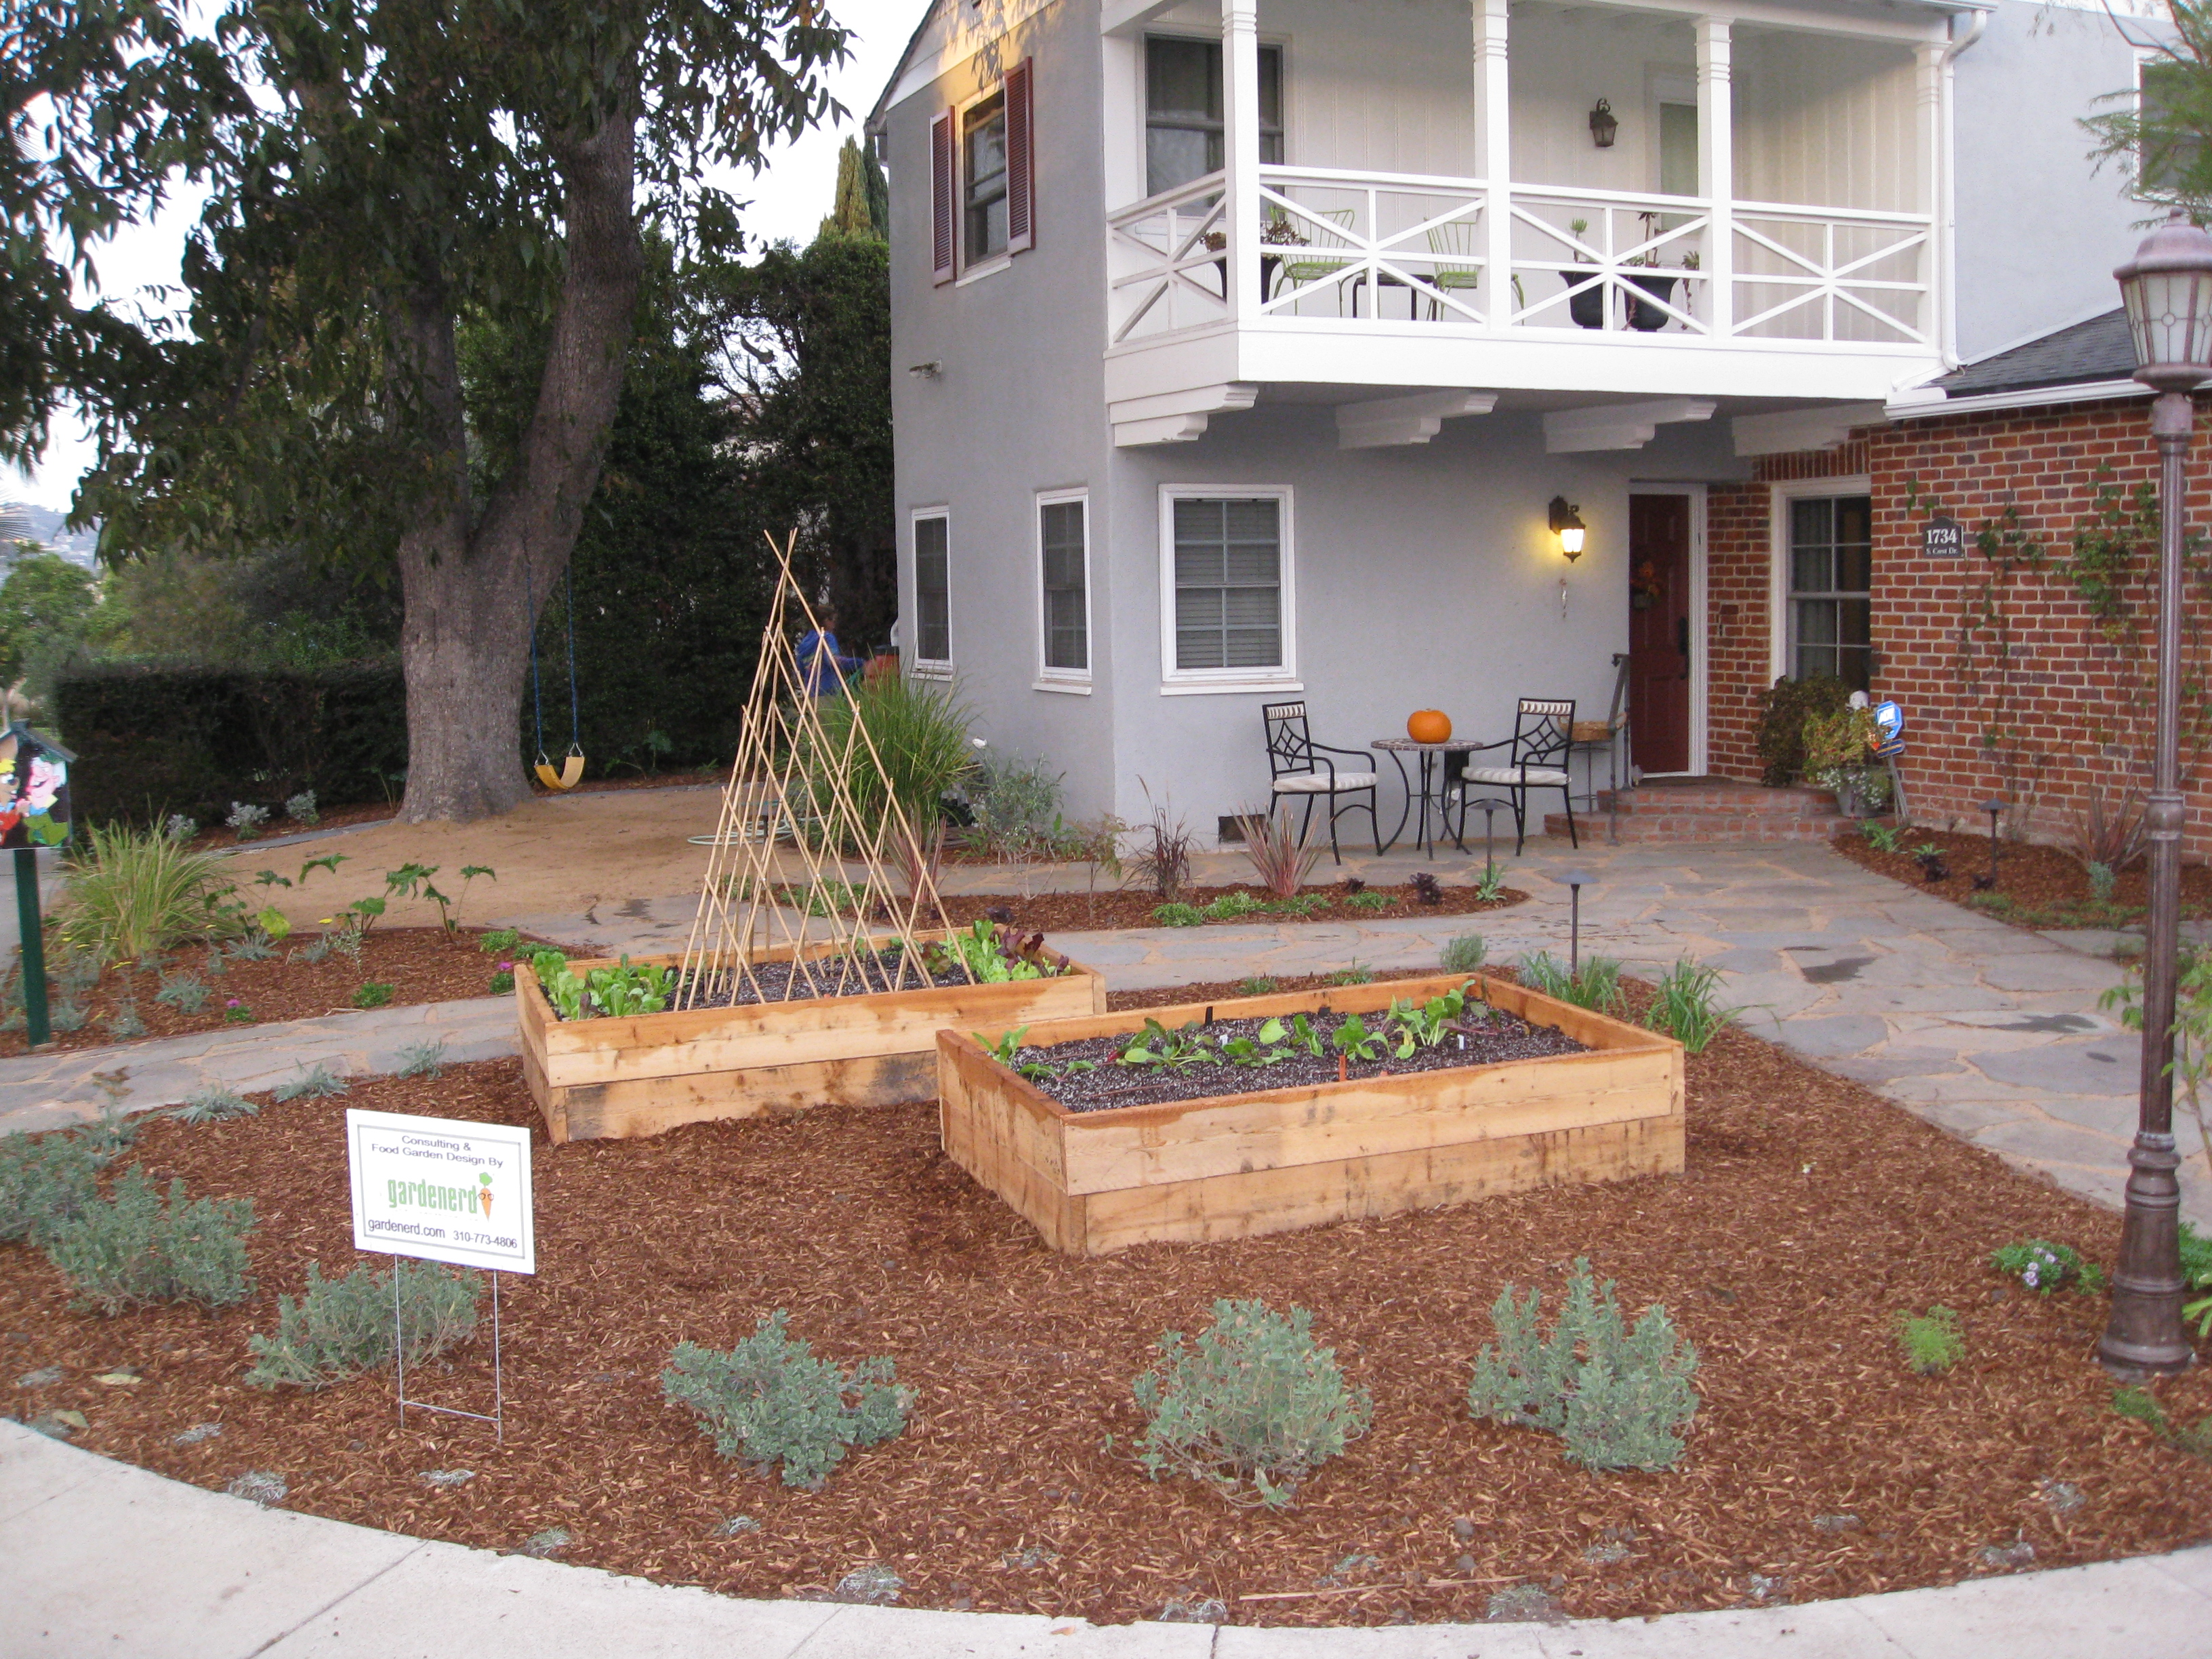 Two new veggie beds surrounded by natives and colorful drought tolerant plants.